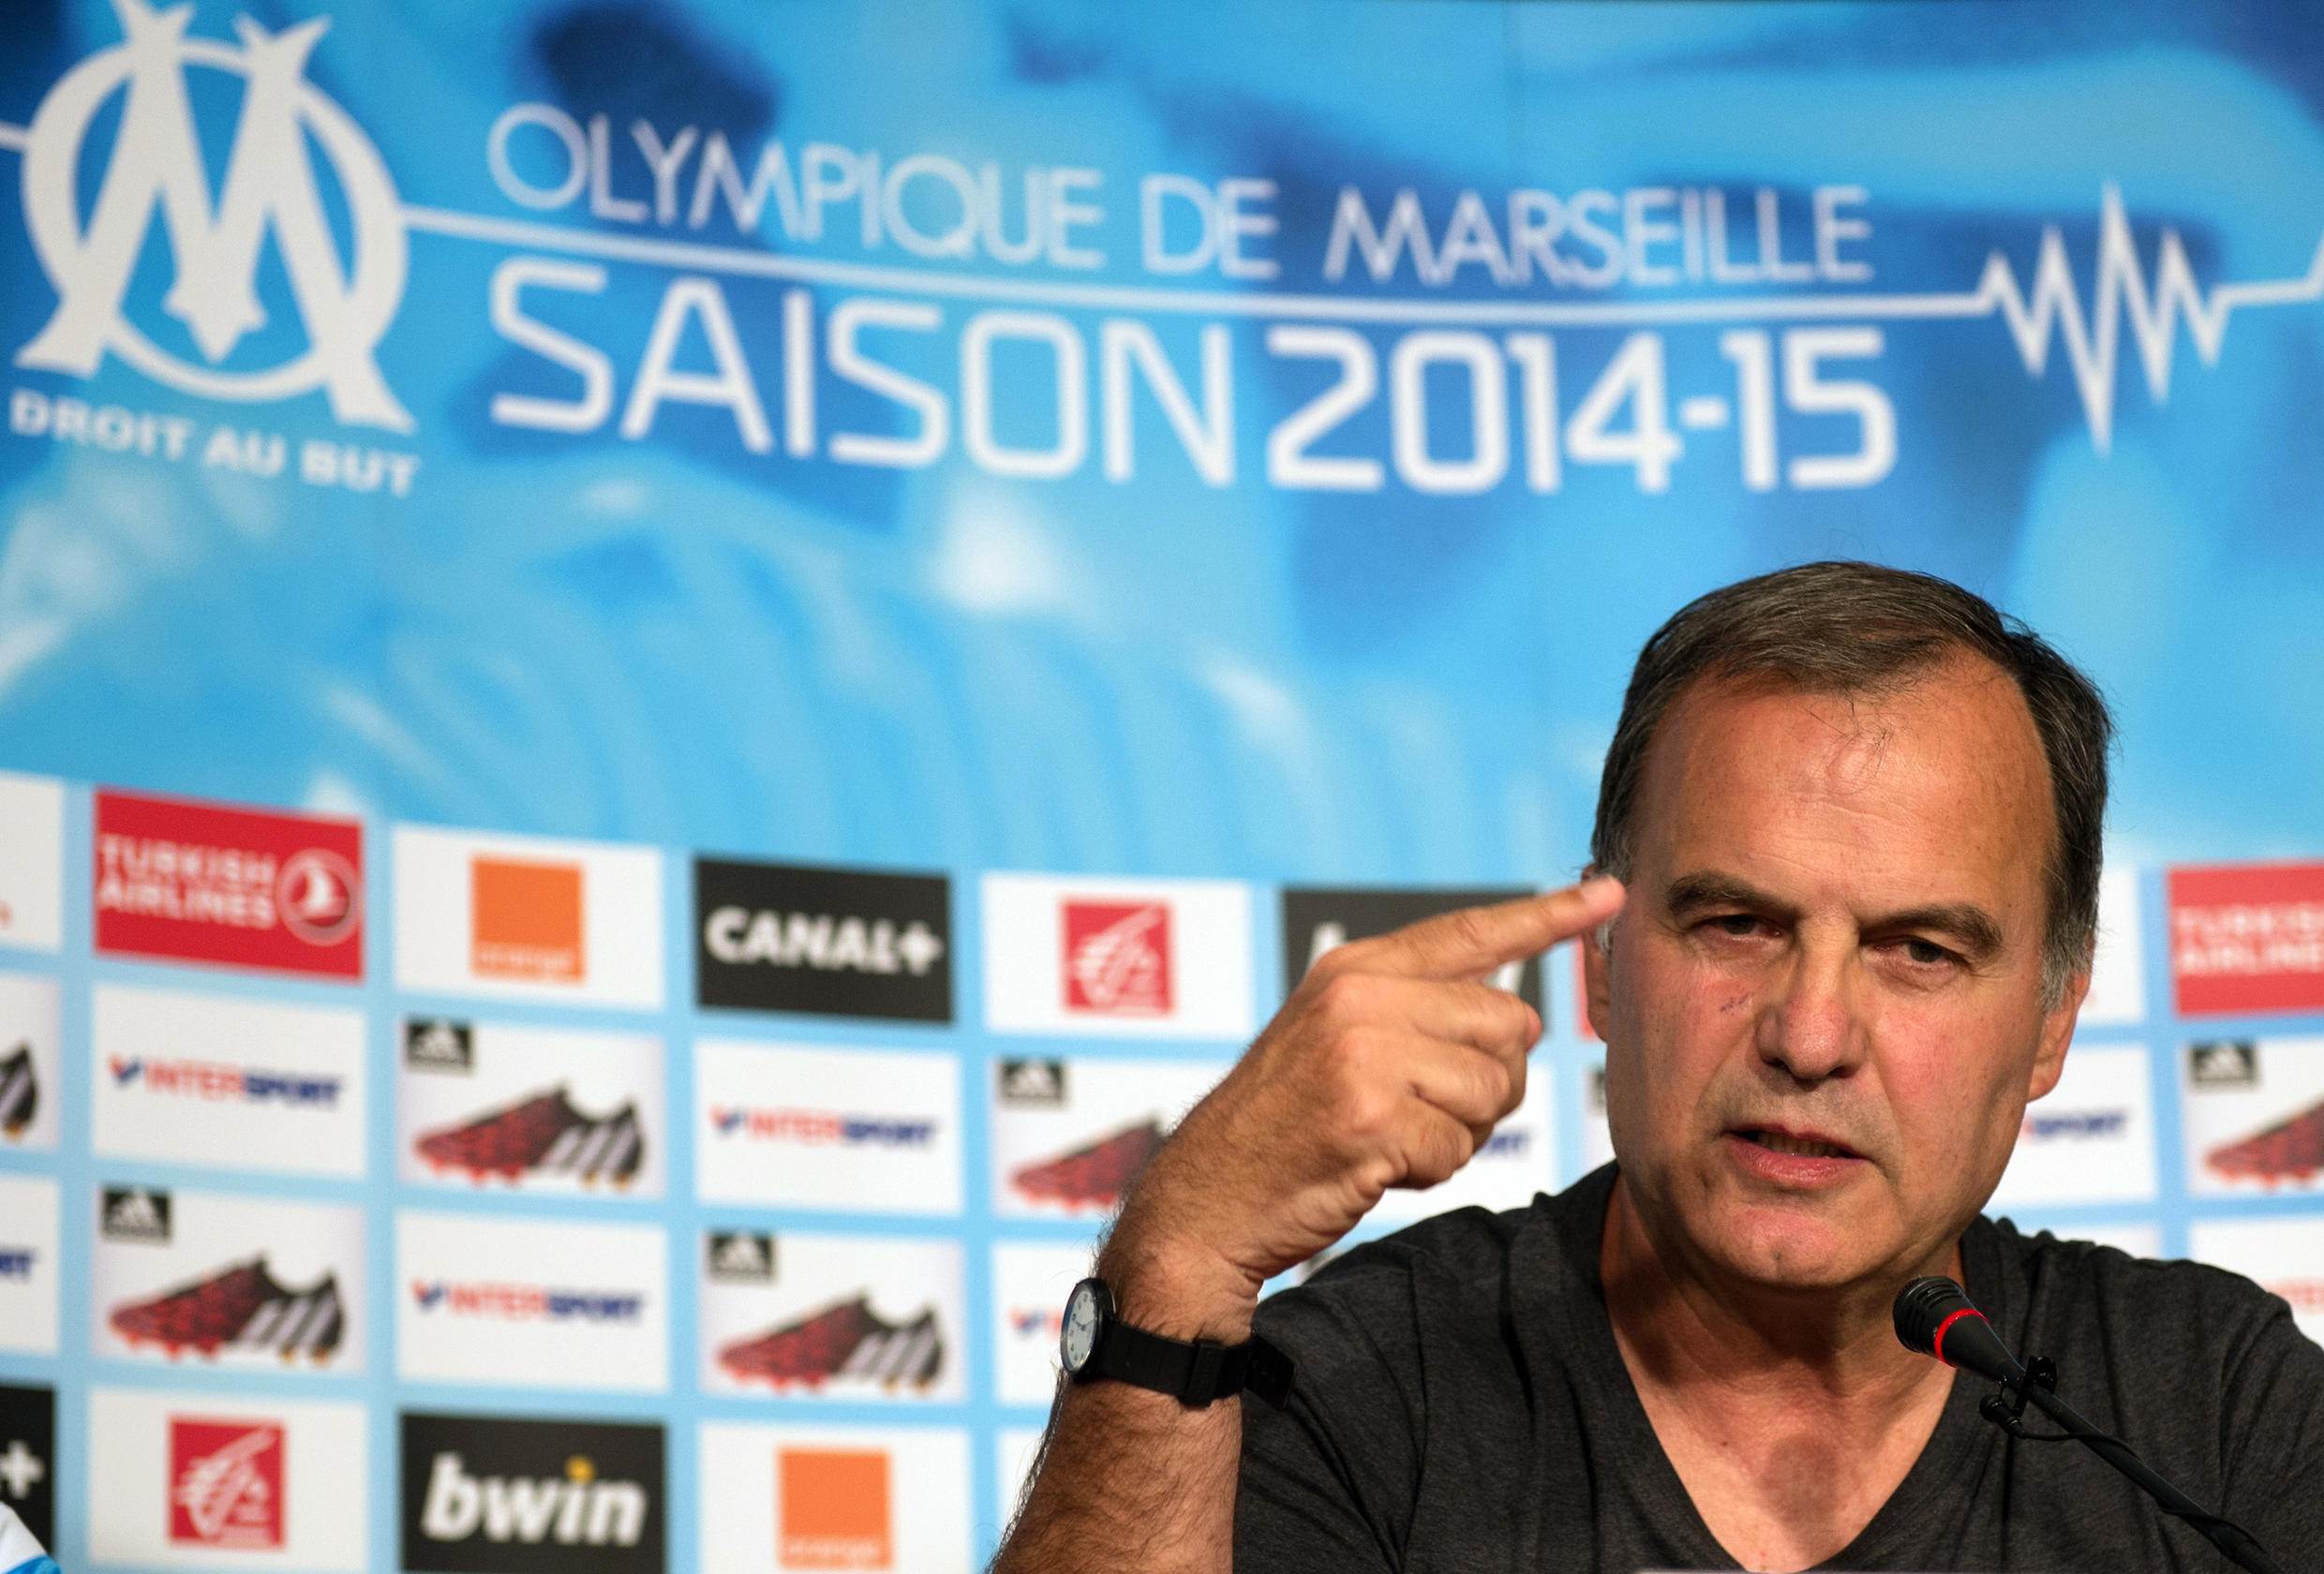 Marcelo Bielsa's Marseille have detonated their Ligue 1 title chances by losing four consecutive matches in April